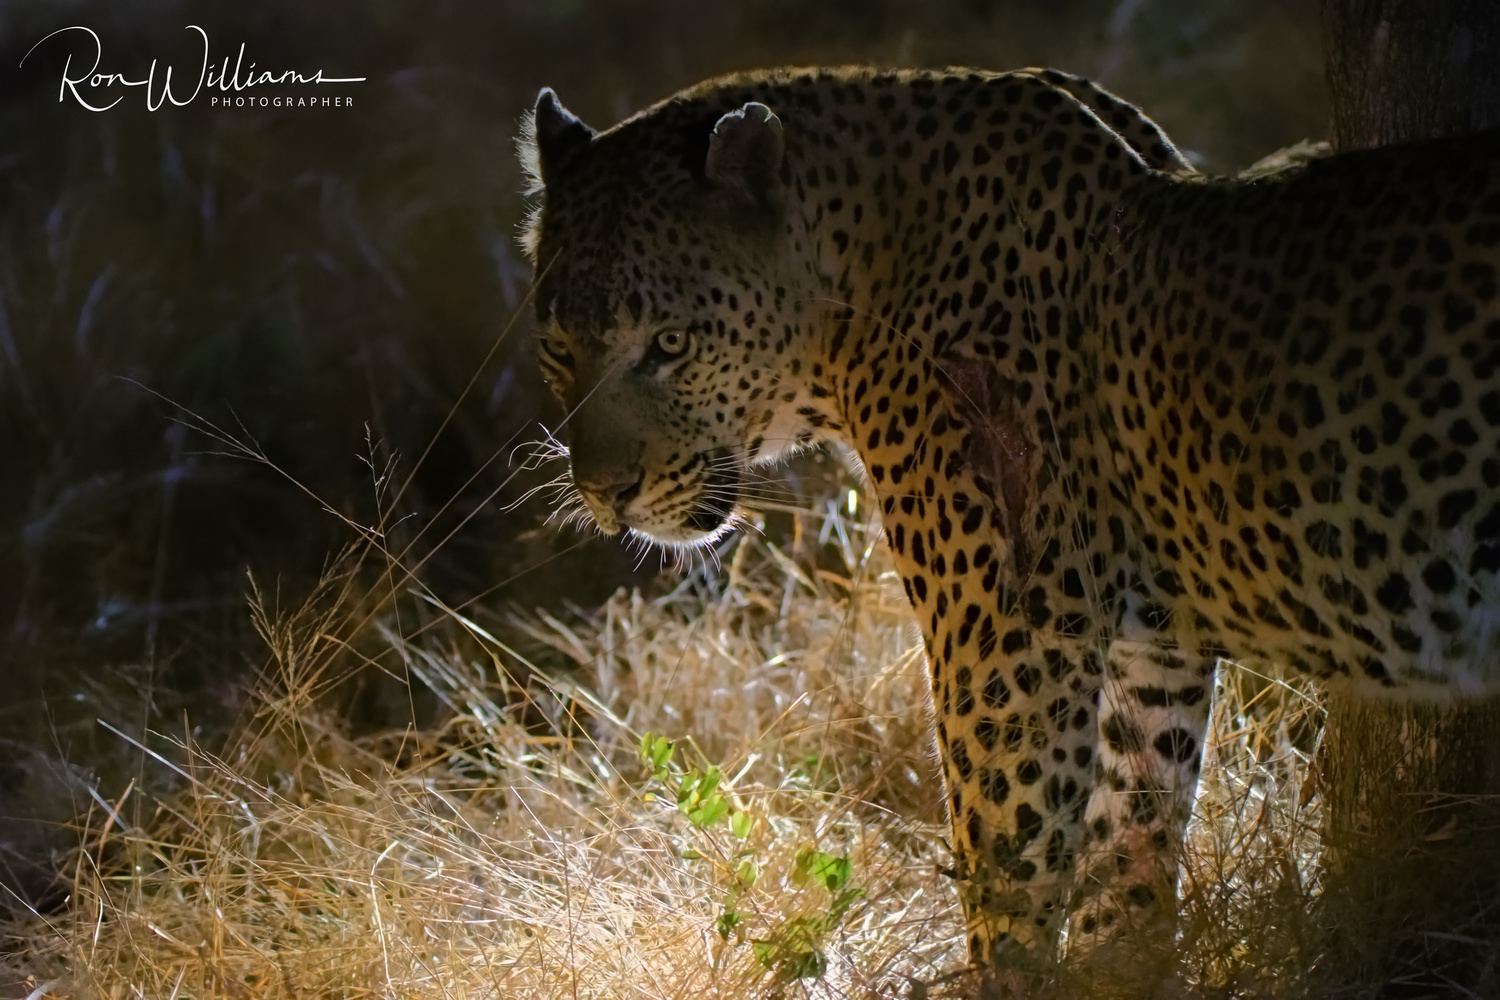 Leopard at night by Ron Williams